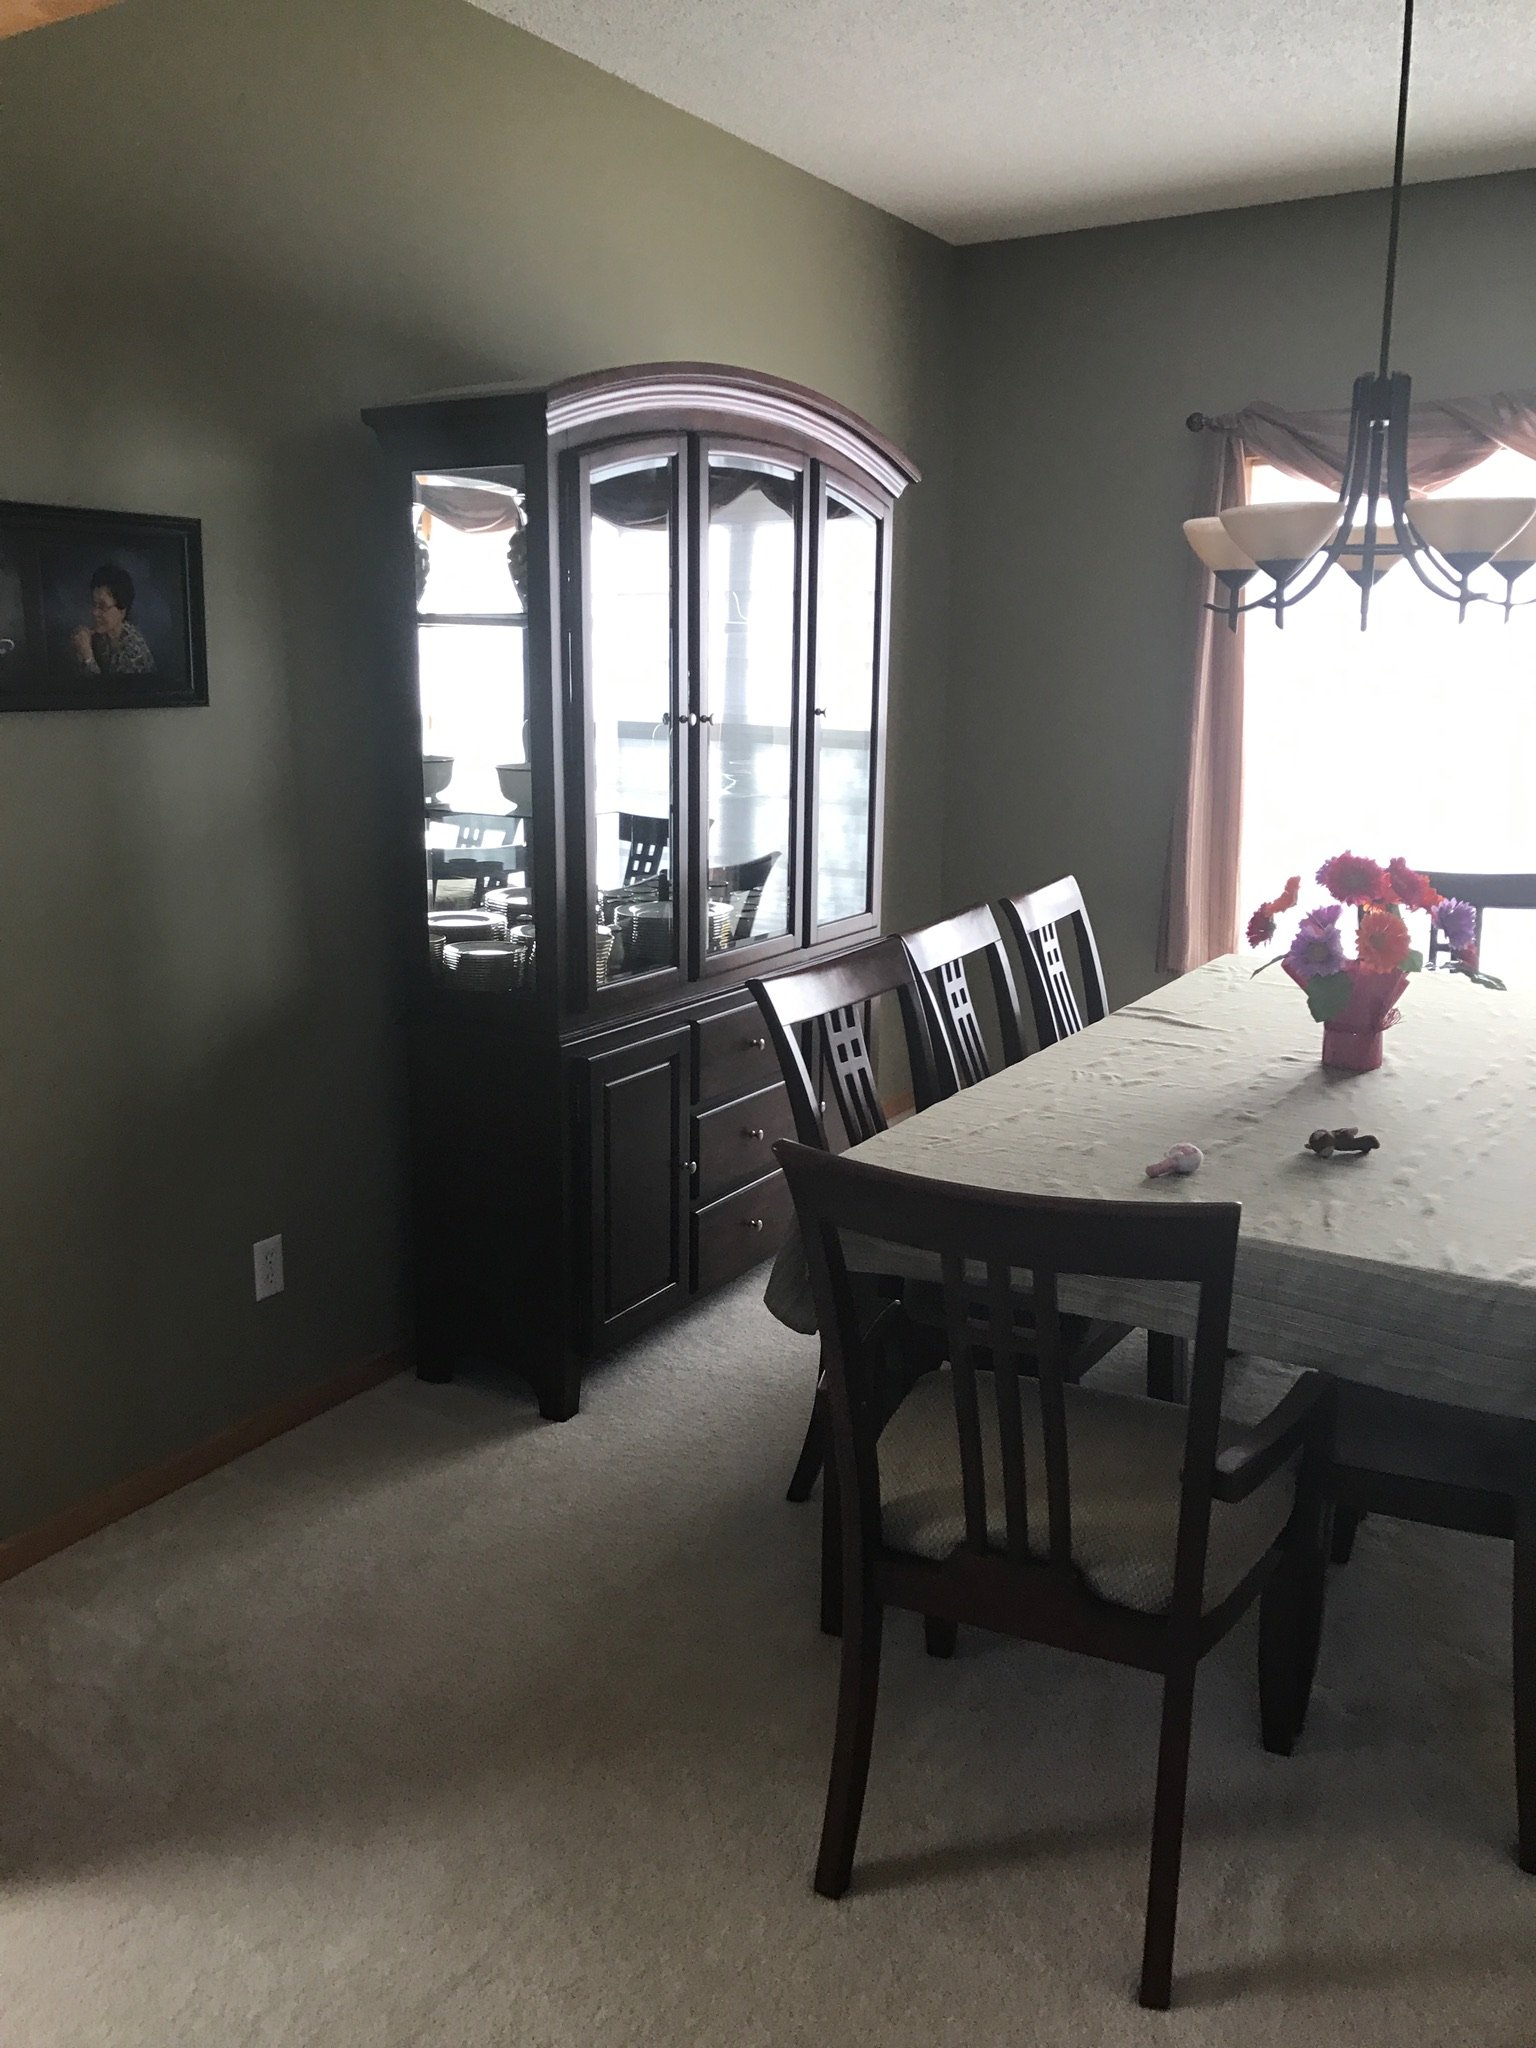 This separate formal dining room was spacious but felt disconnected from the activity of the kitchen (and as a result, was not used as much).